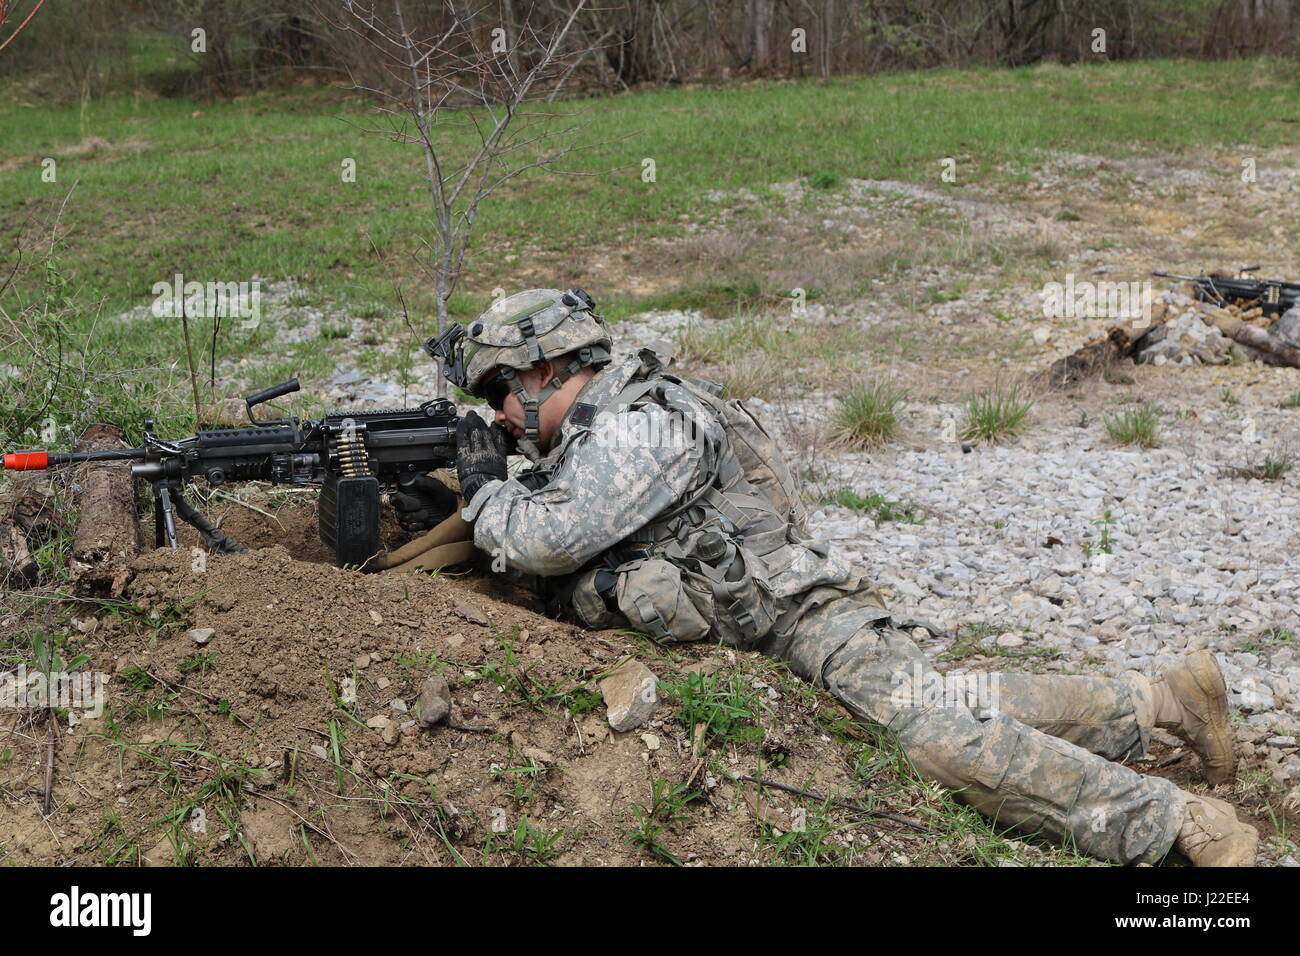 Soldier from C Co  1-293rd Infantry Battalion, 76th Infantry